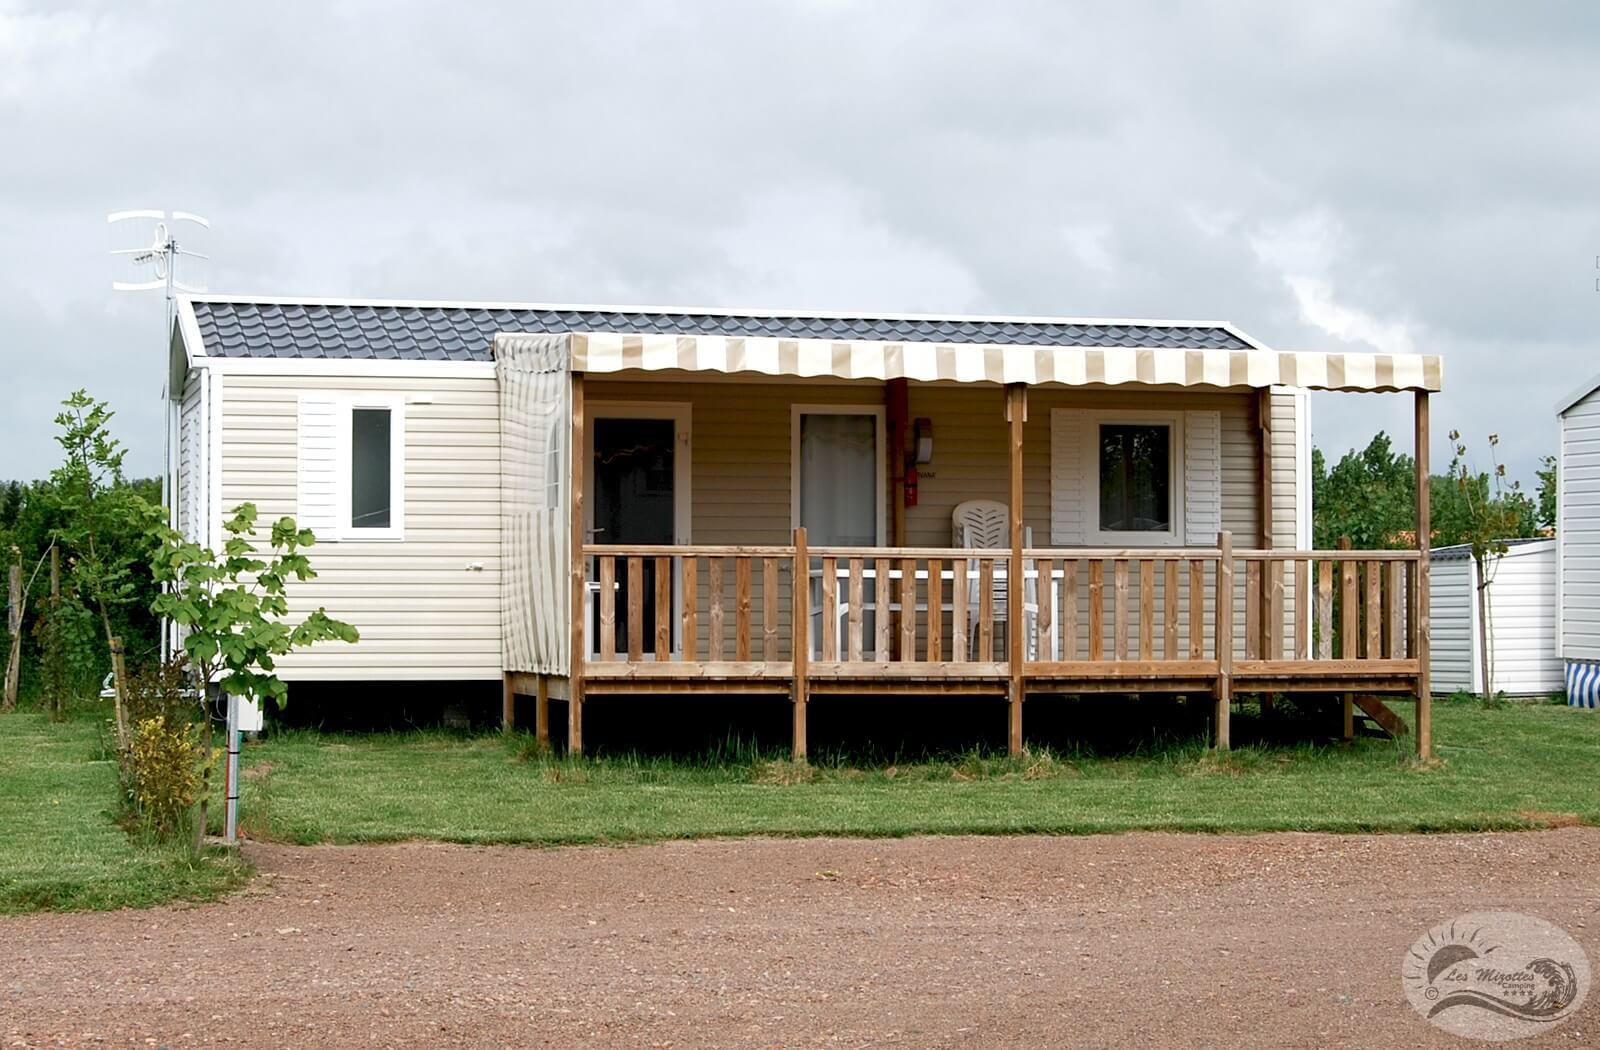 Location - Mobil-Home Vip 3 Chambres > 32 M² - Camping Les Mizottes